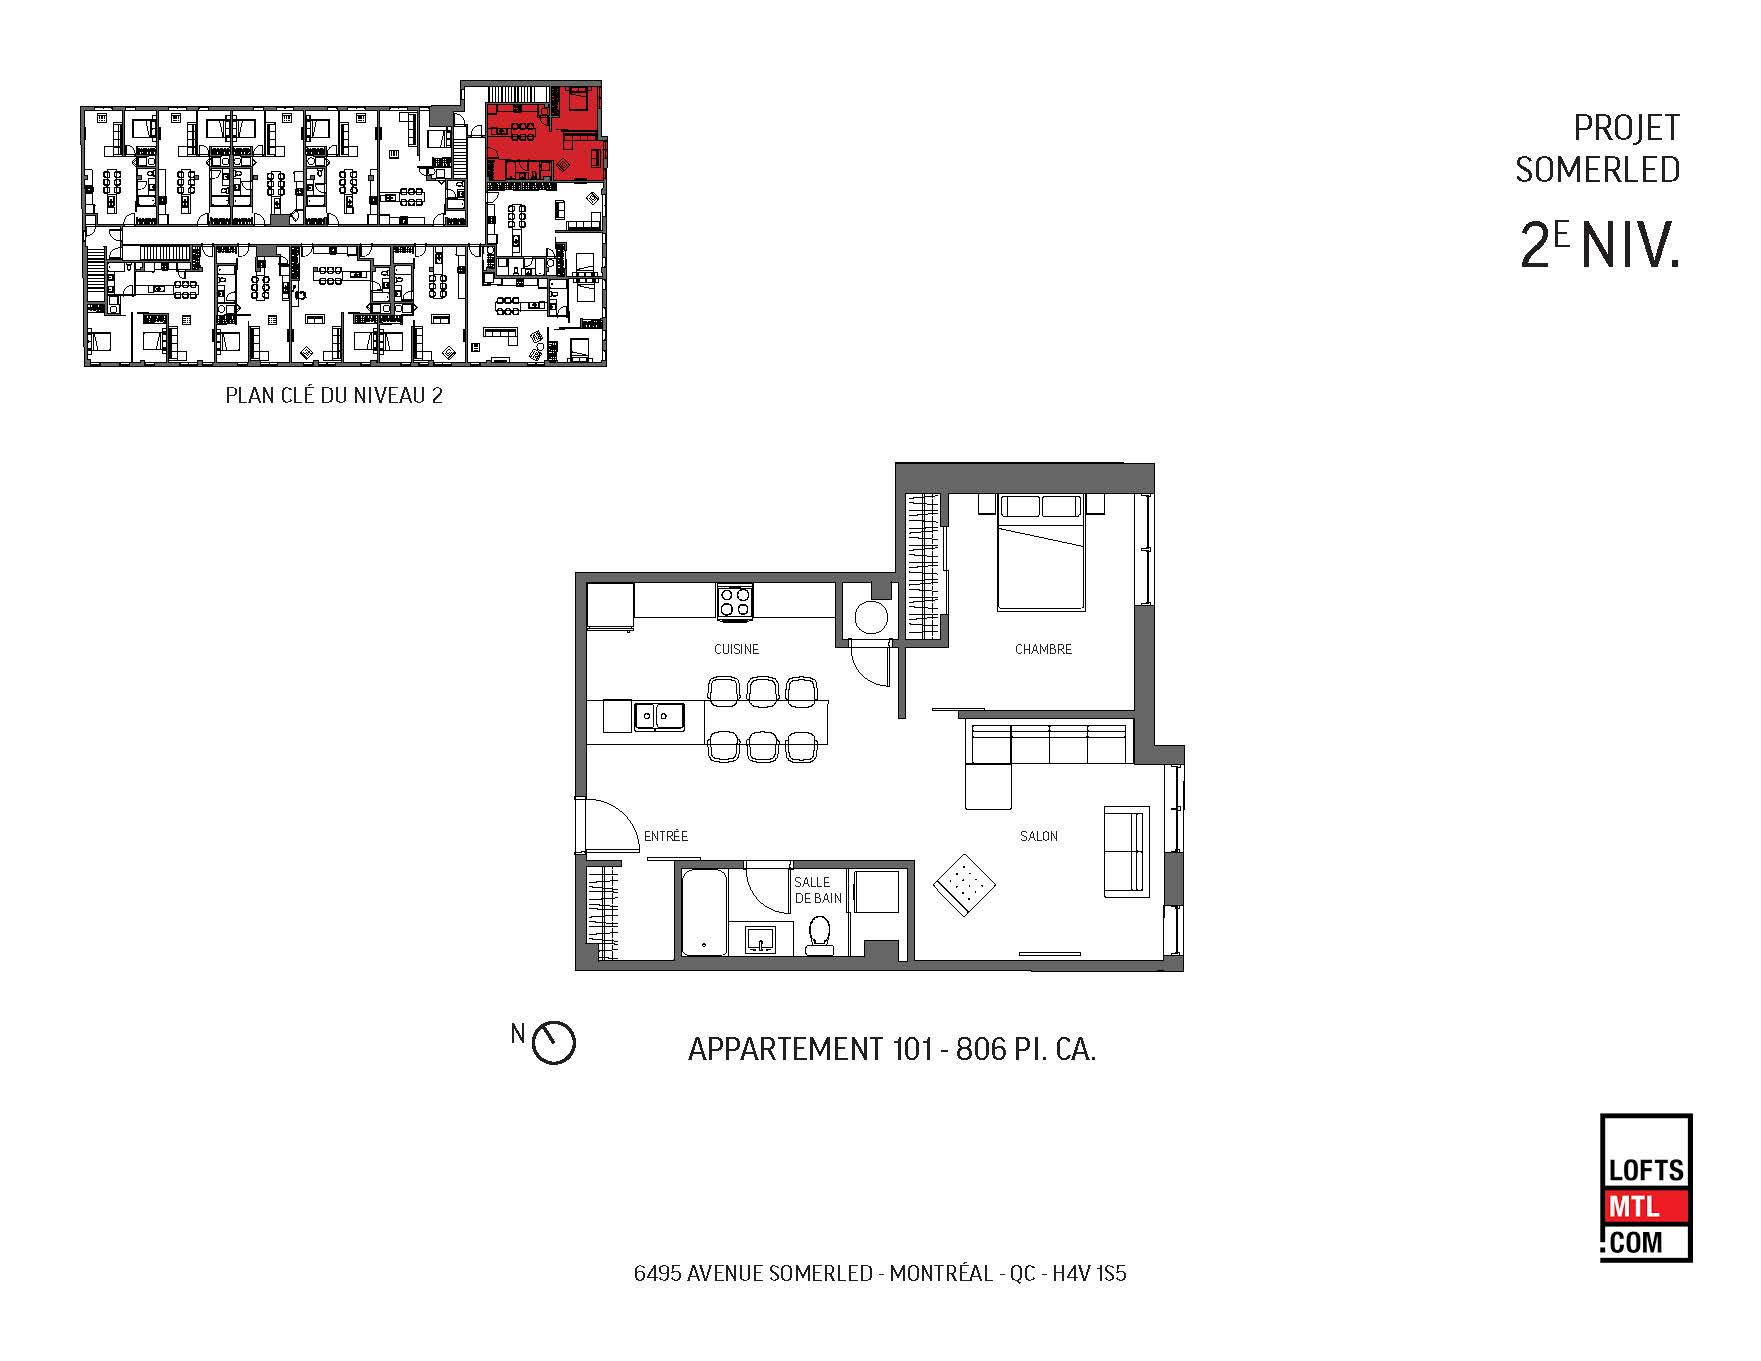 Plans appartements vectoriel Somerled_Page_01.jpg